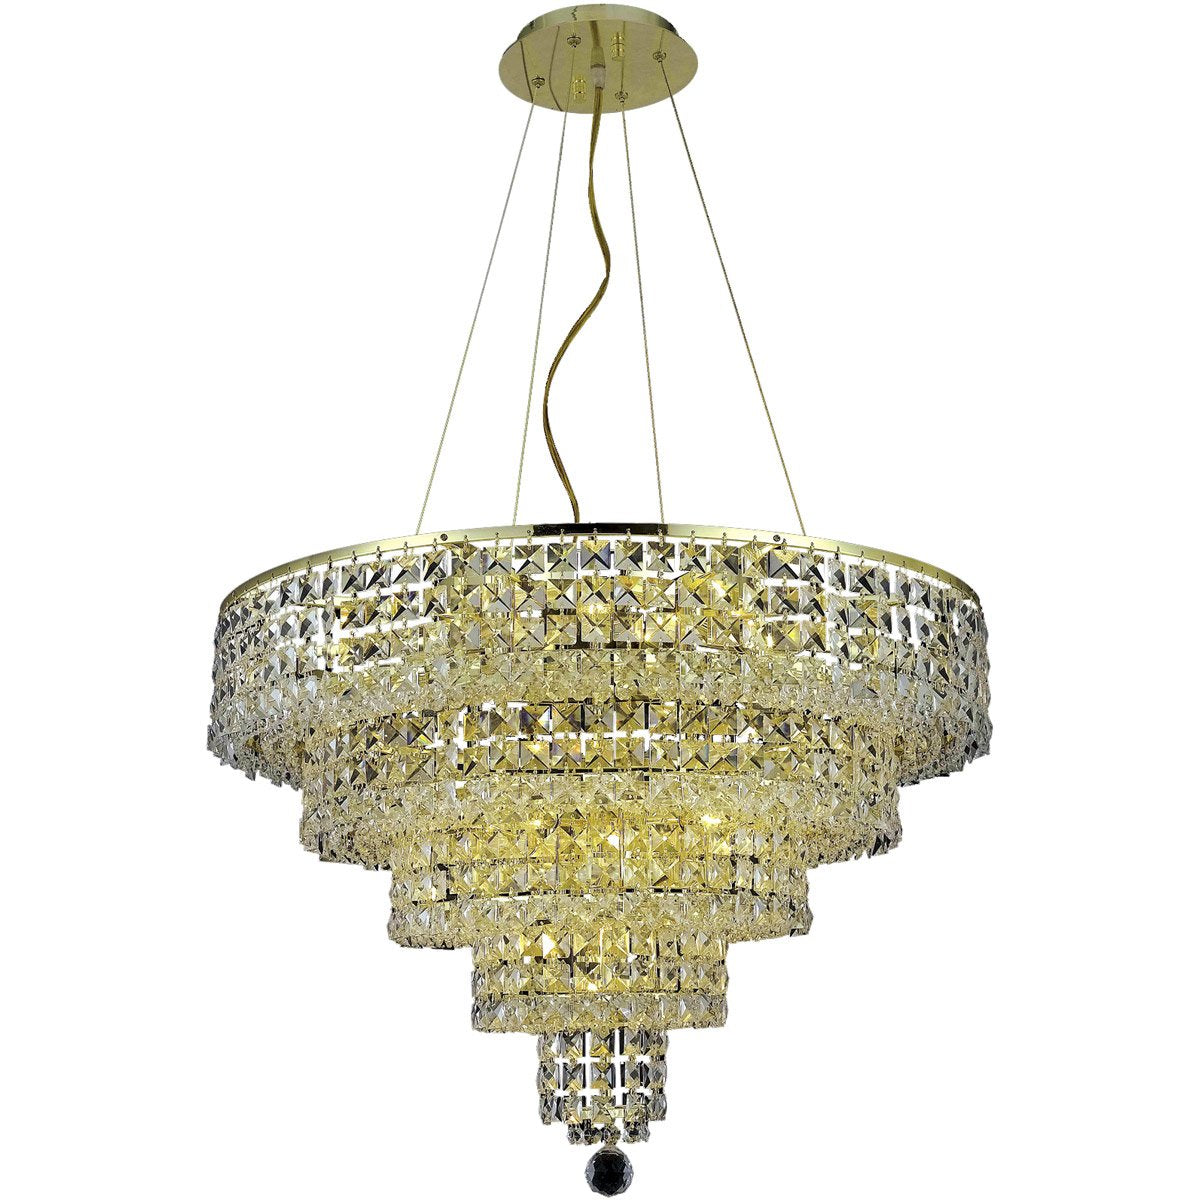 Maxime 26 Crystal Chandelier With 14 Lights - Gold Finish And Clear / Elegant Cut Crystal Chandelier